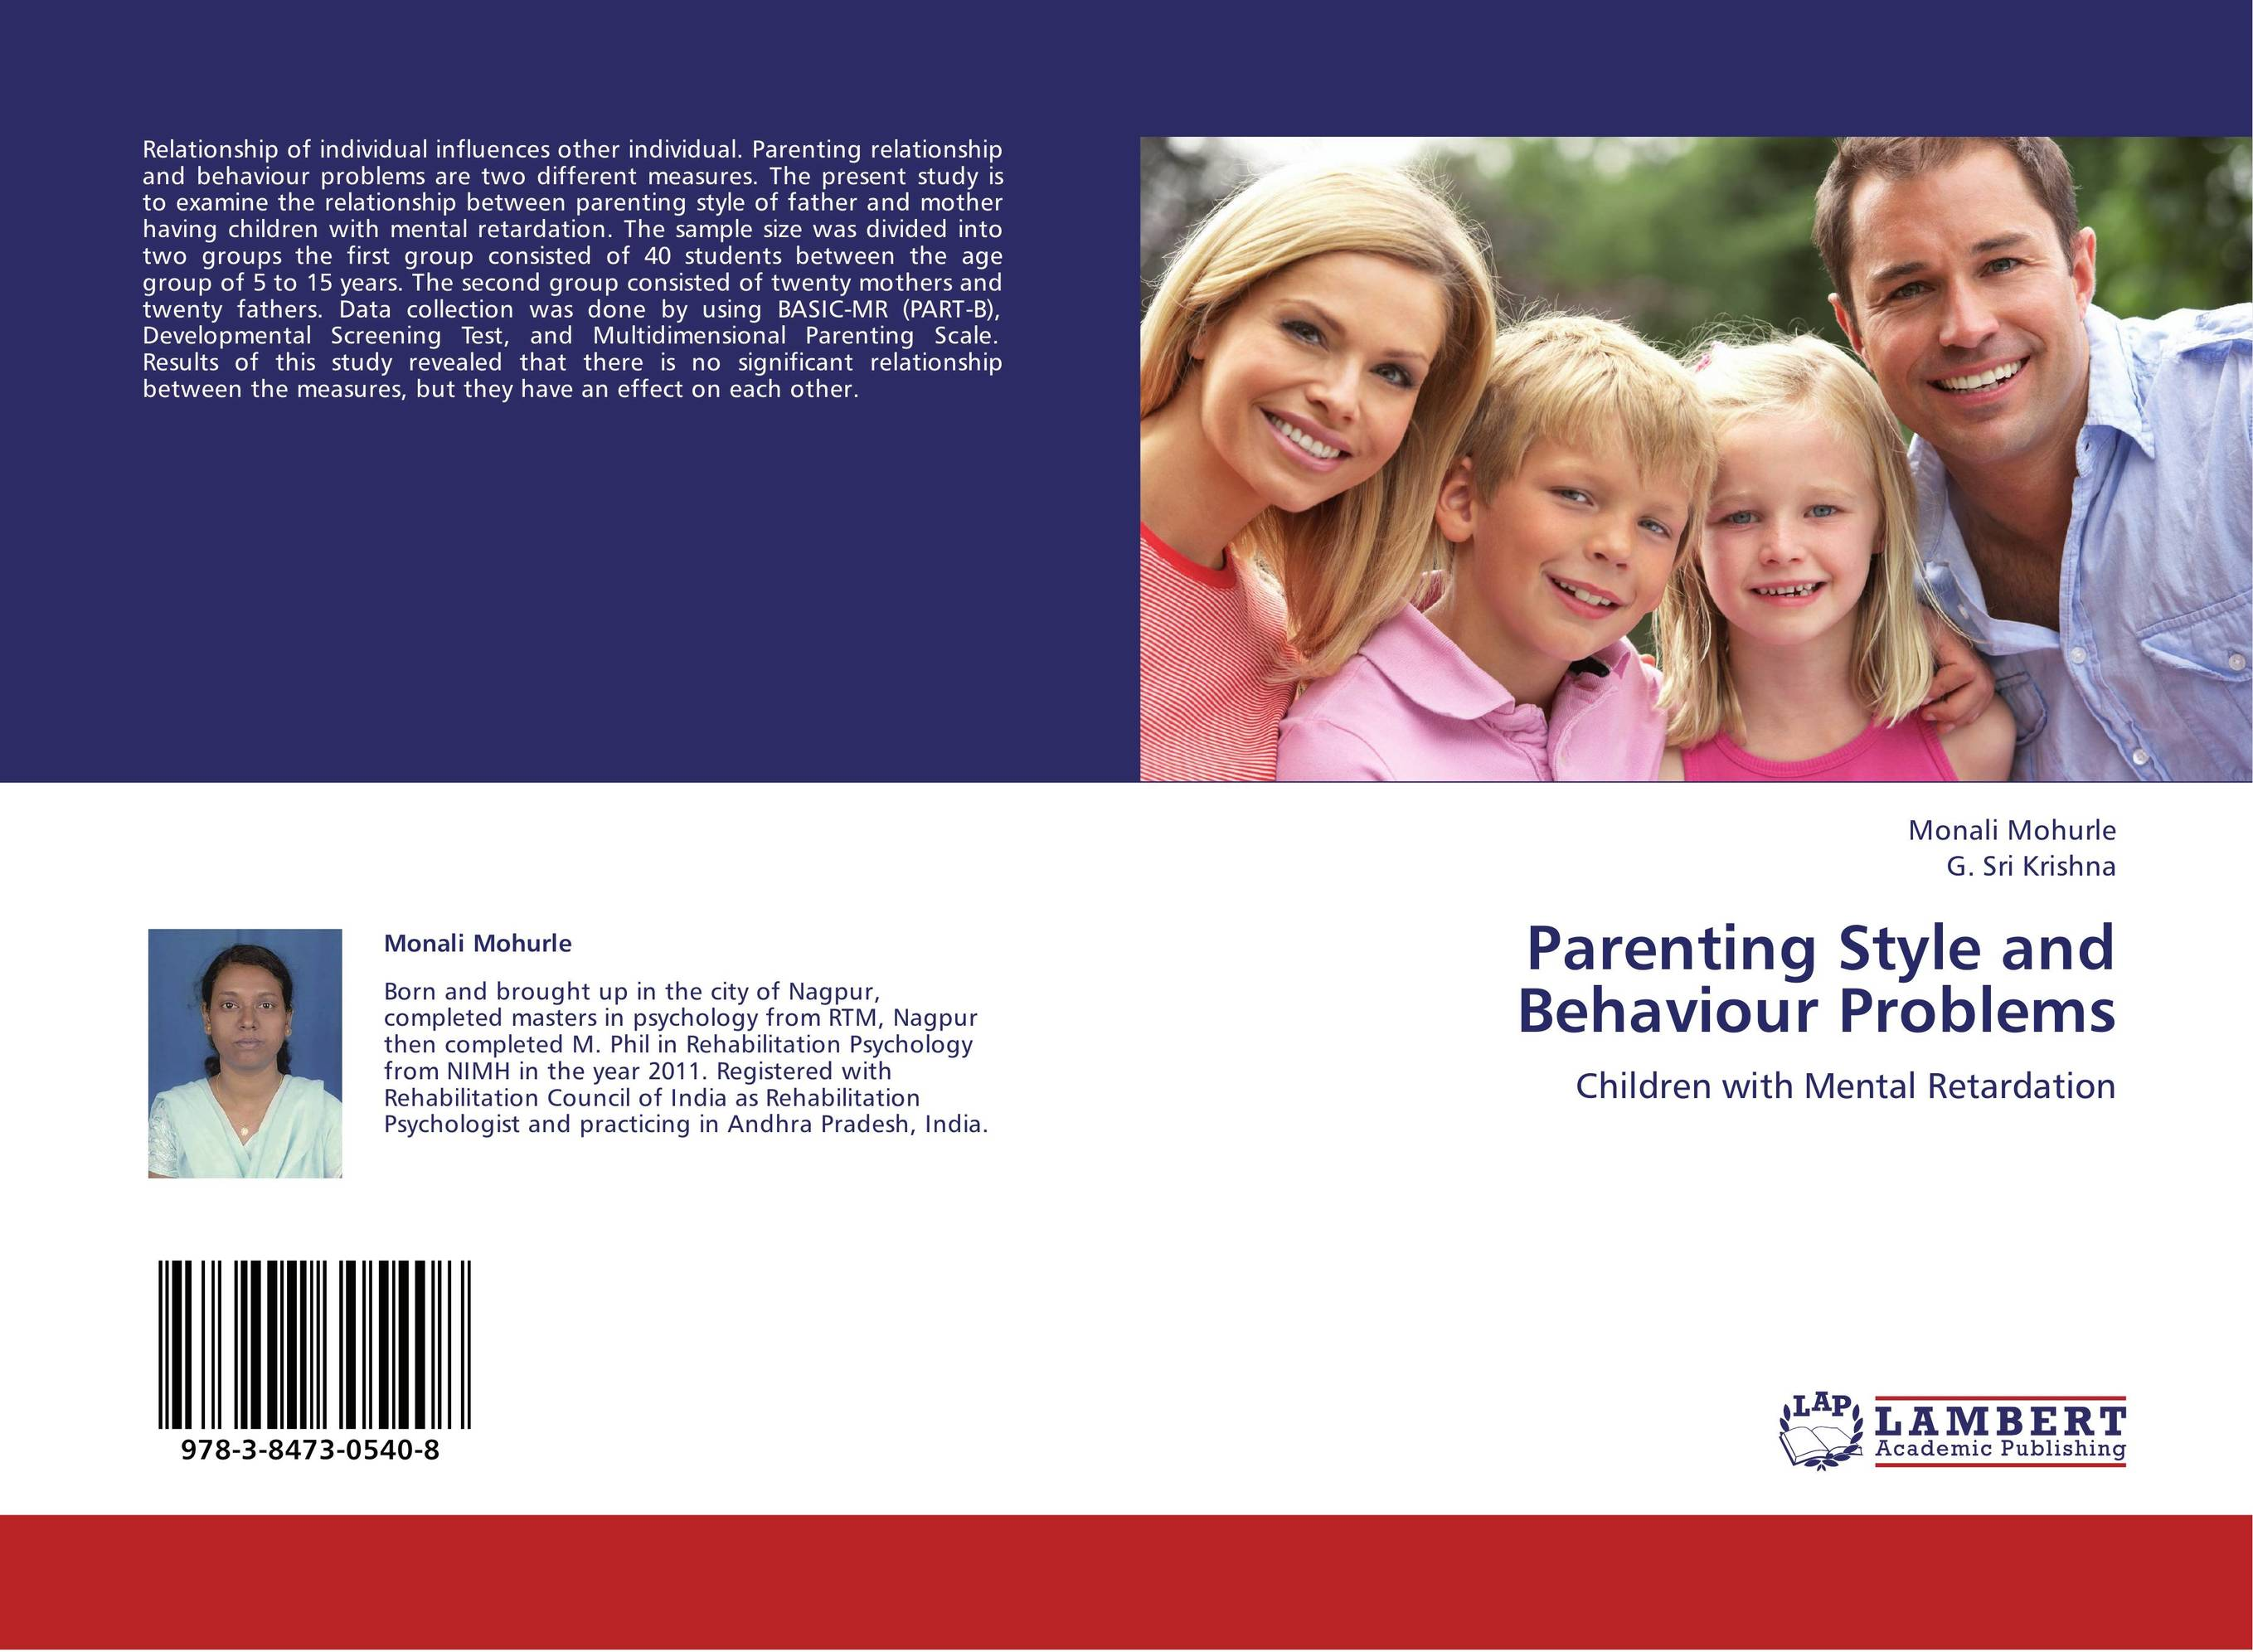 human development parenting style The second parenting style i will be investigating is known as the permissive parenting style this style involves the parent having a high responsiveness, but a low amount of demands from their child these parents tend to give few guidelines and rules for their child this can lead to the child not.